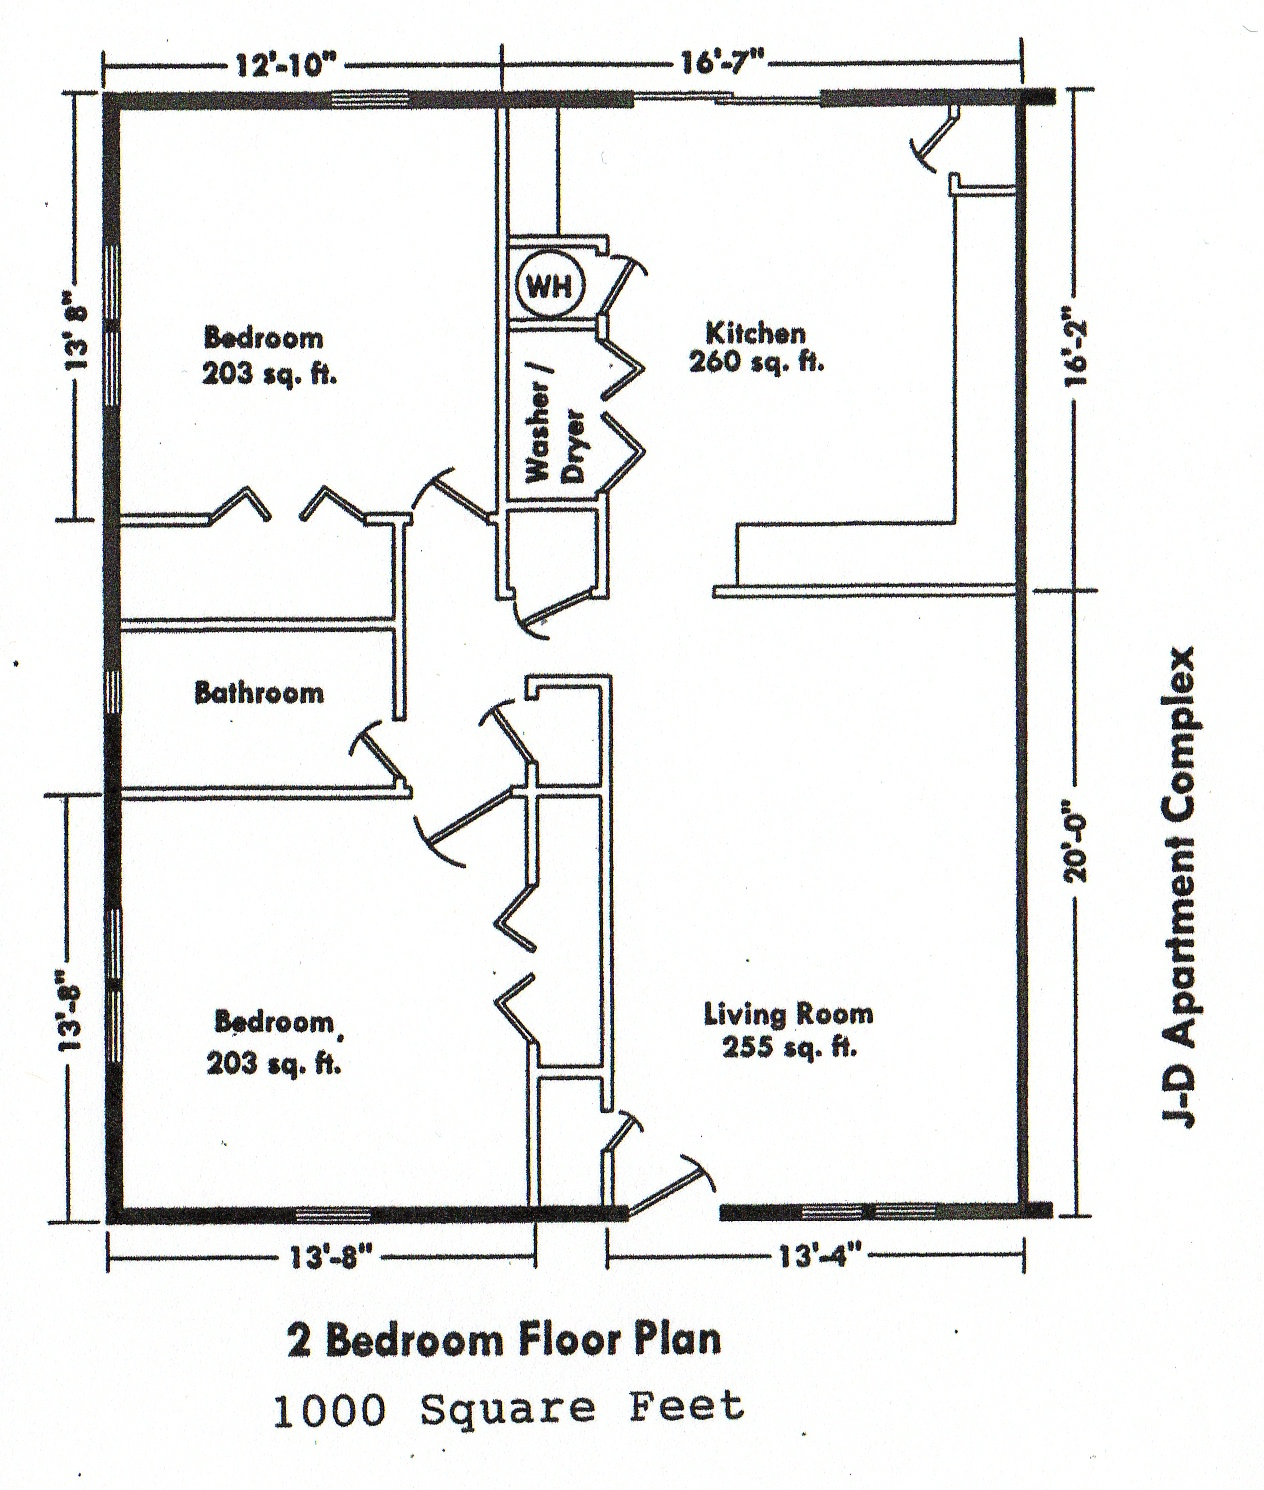 Bedroom floor plans over 5000 house plans for 2 bedroom 2 bath open floor plans